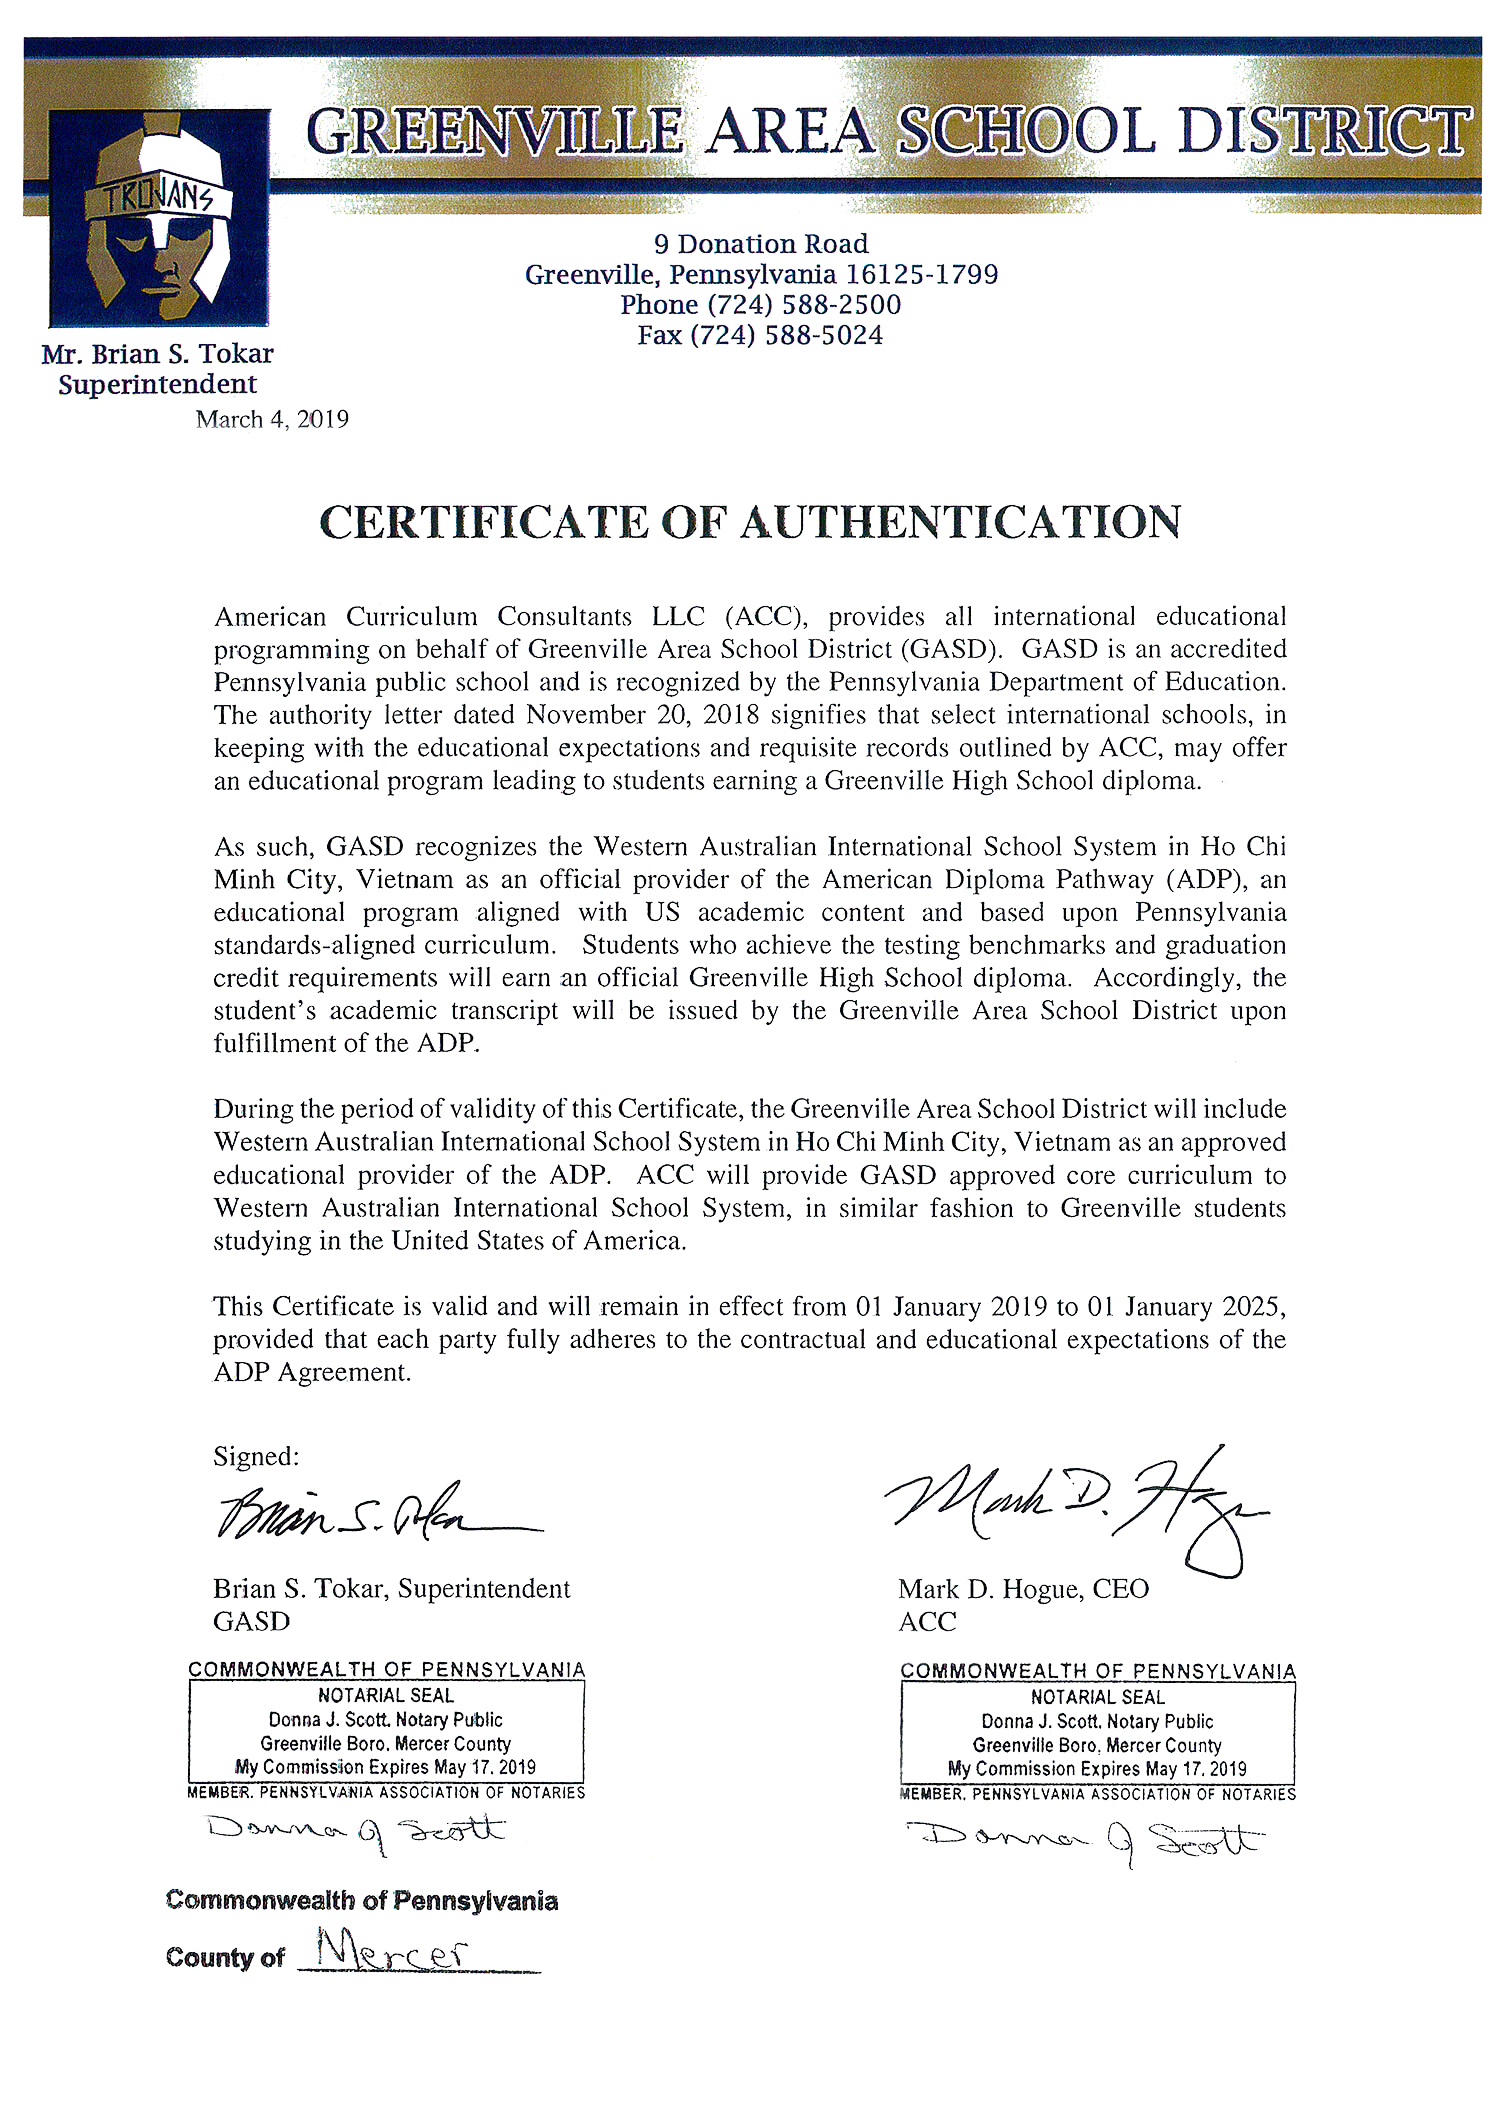 Certificate of Authentication of Greenville